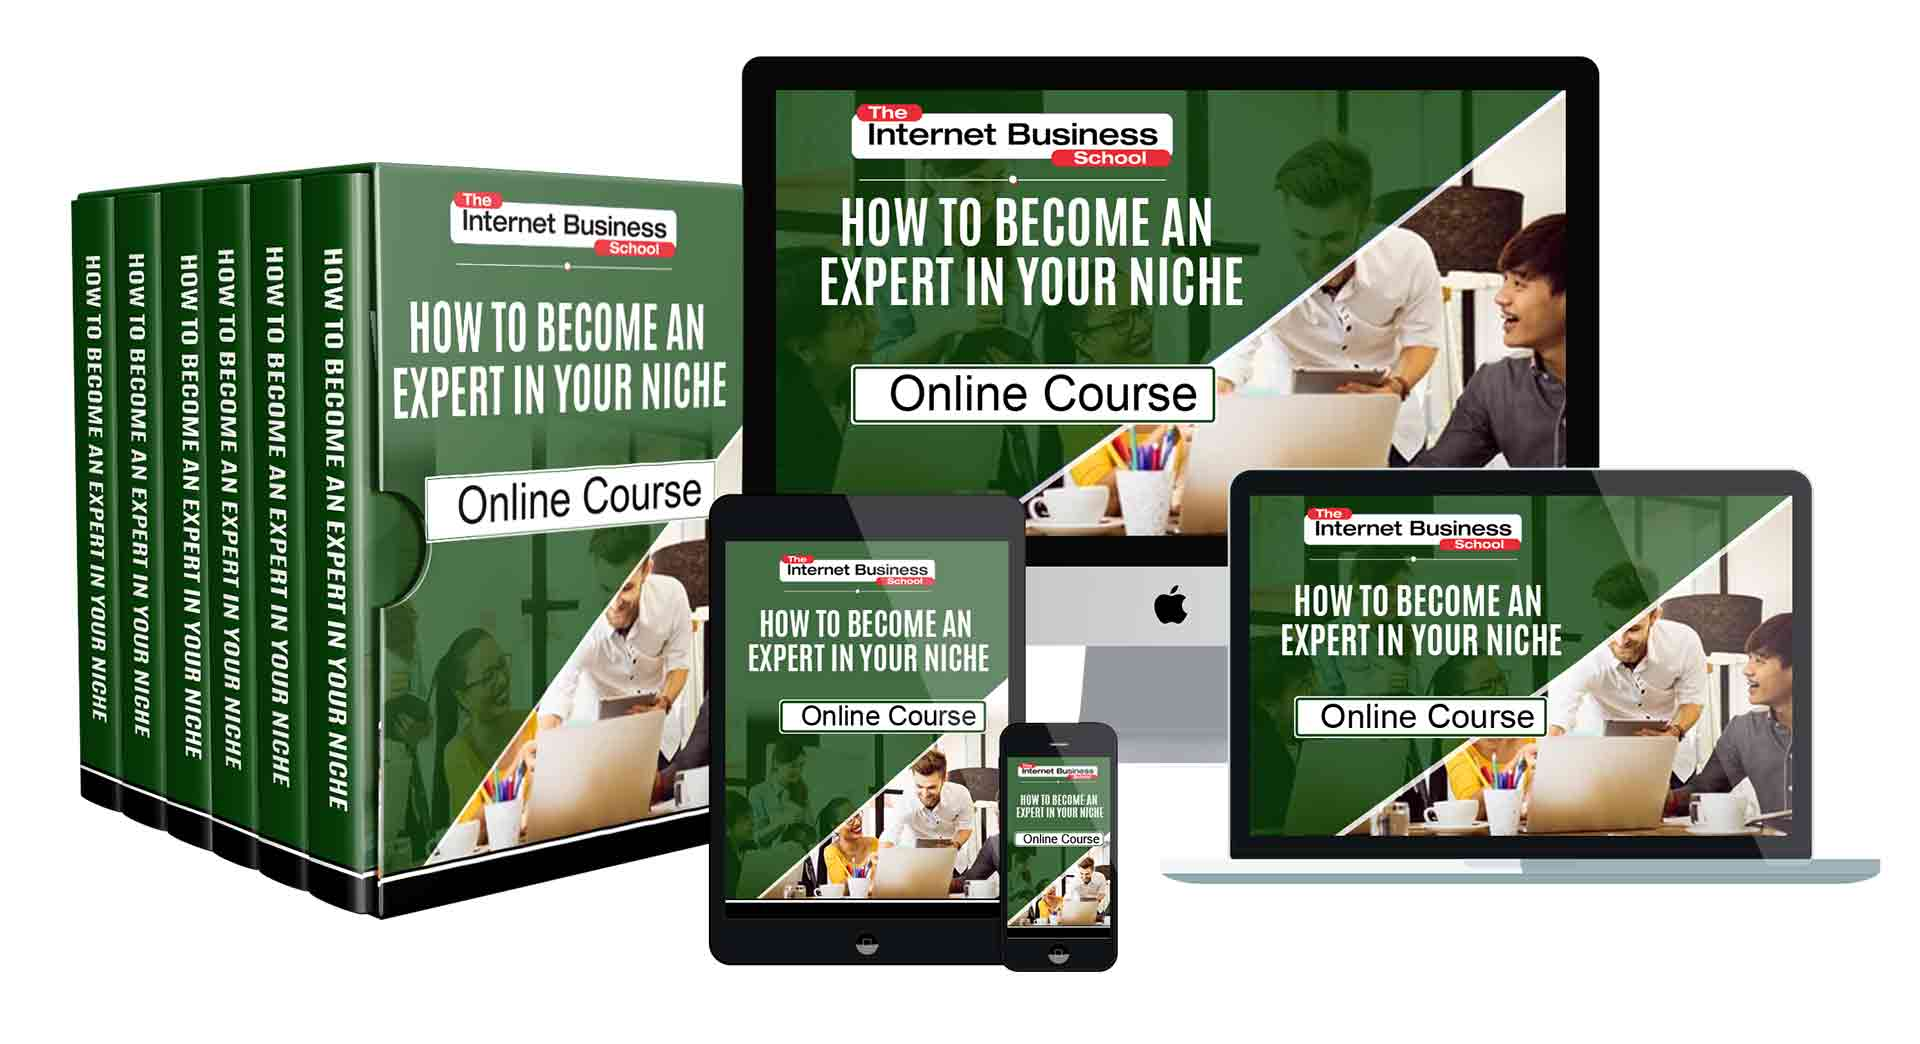 How To Become An Expert In Your Niche Course - Cotswold Websites